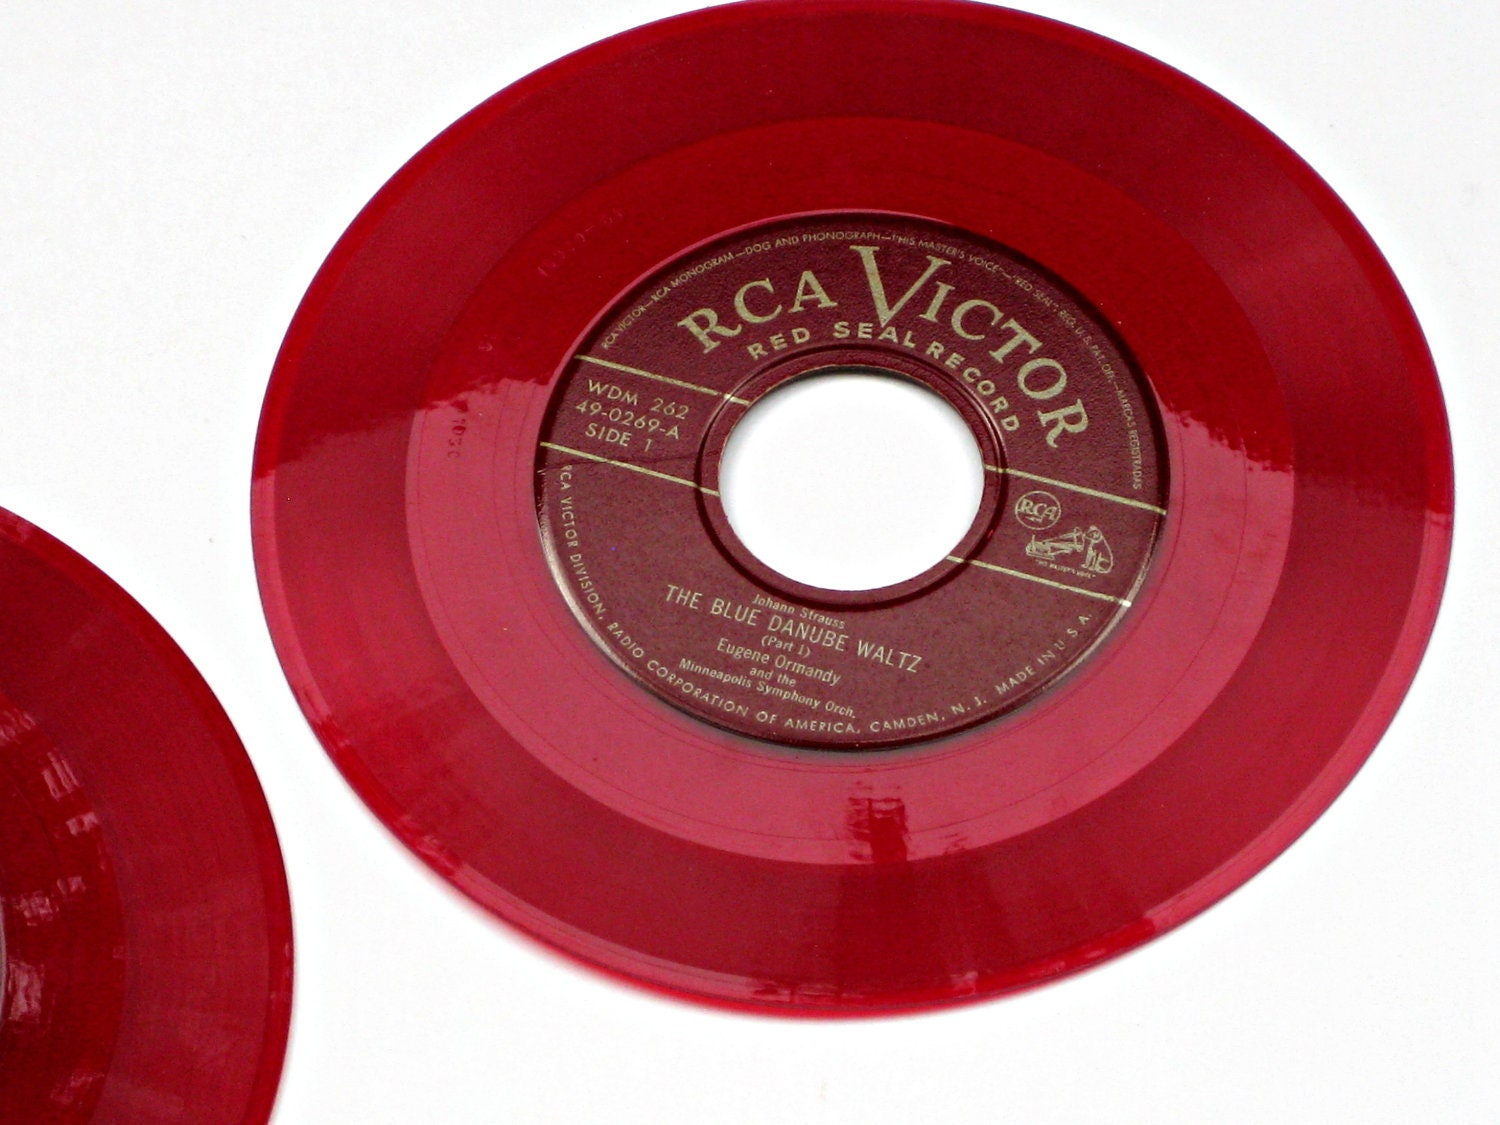 Rca Victor Red Seal Red Vinyl Records Set Of 2 Strauss